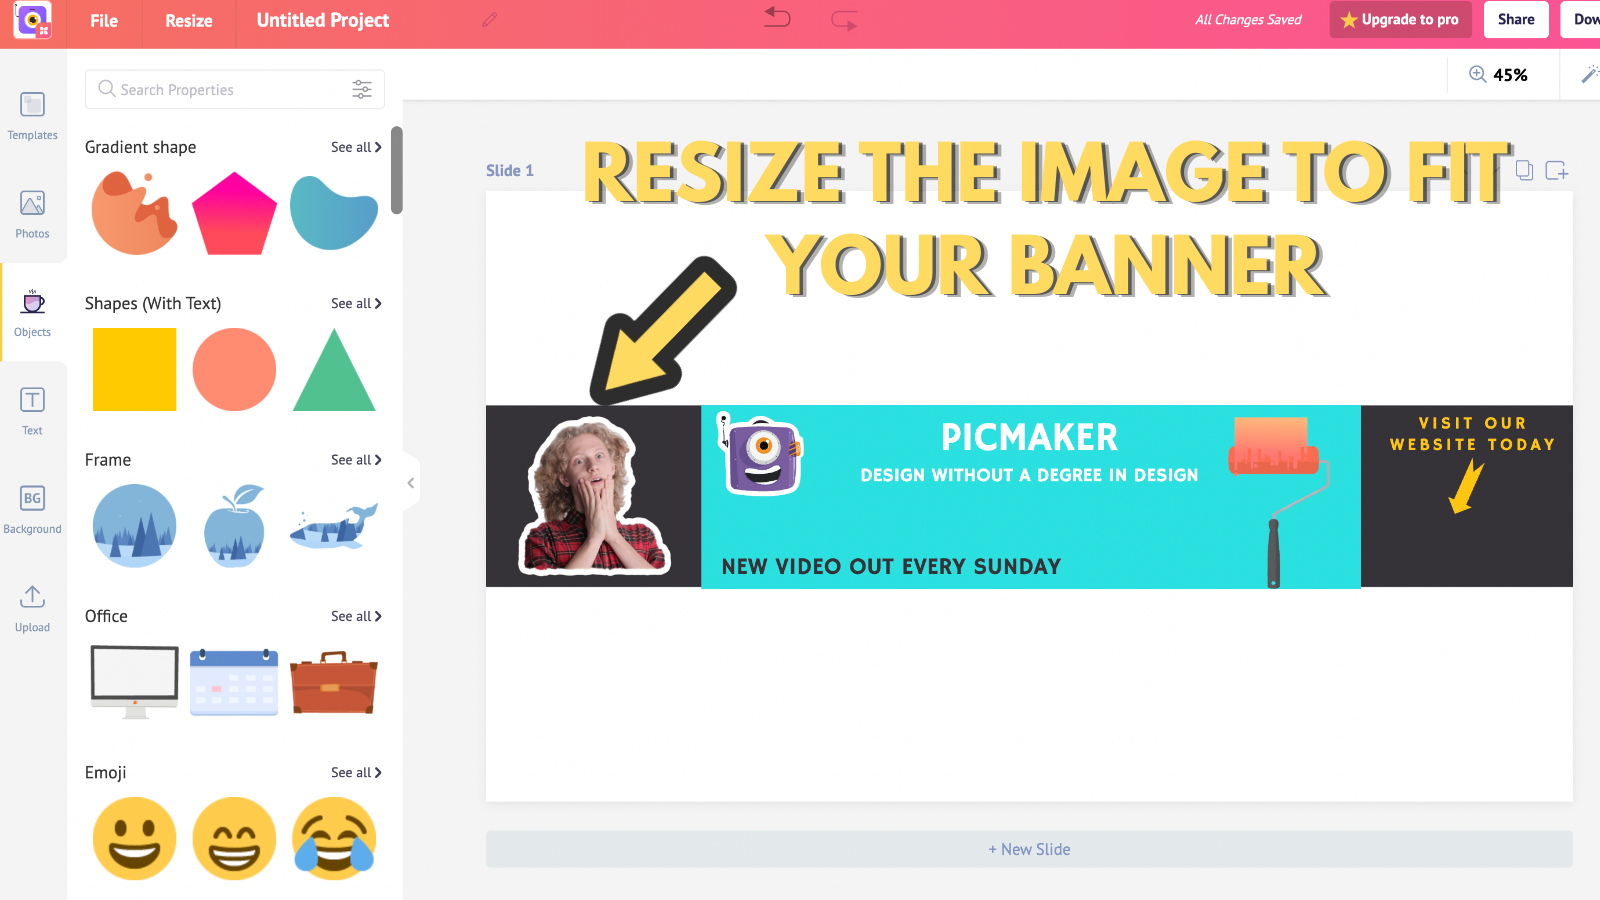 Screenshot that asks you to resize the image to fit your banner (to make youtube banner)